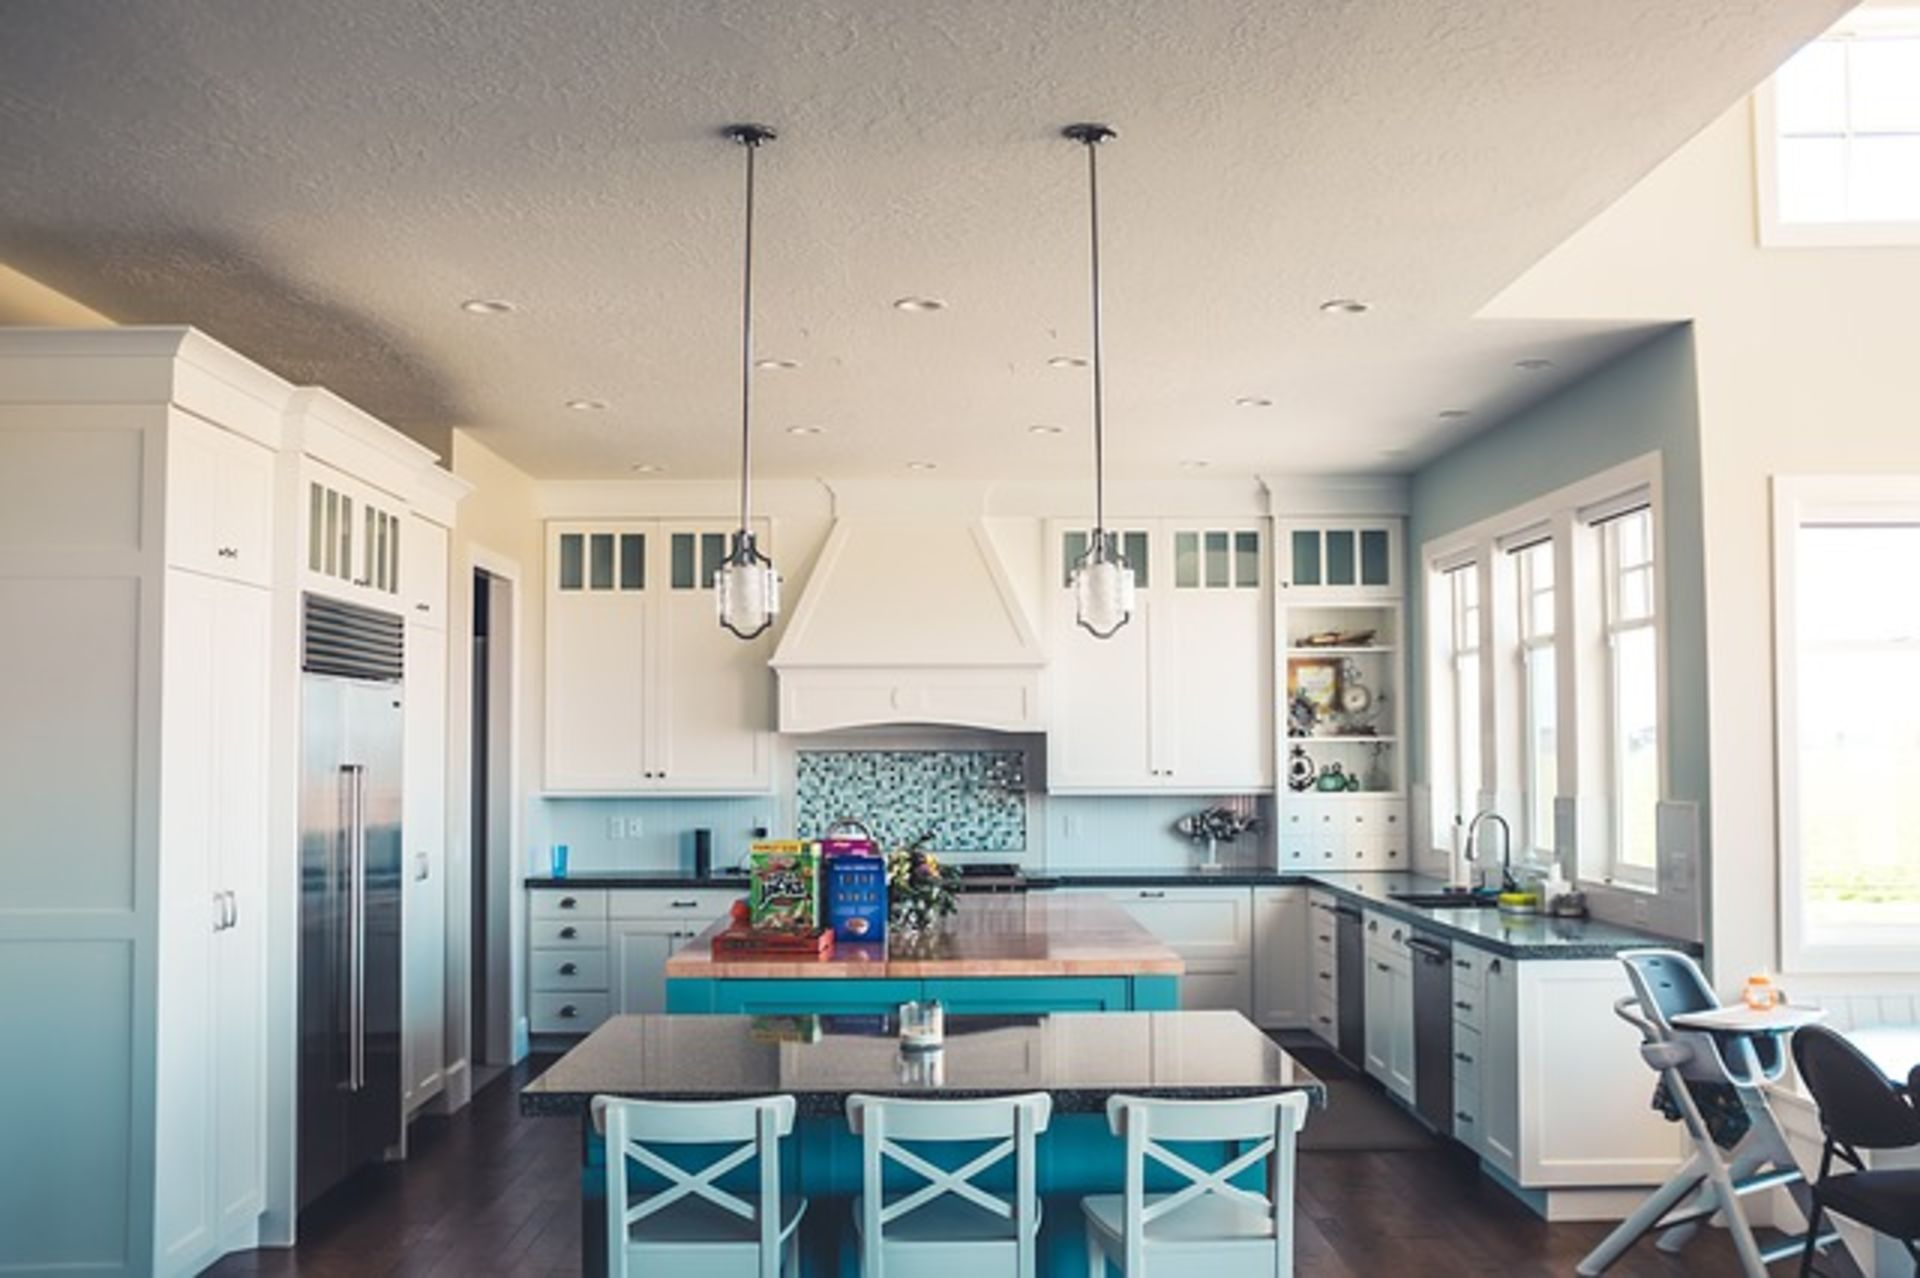 What to Consider When Remodeling a Kitchen